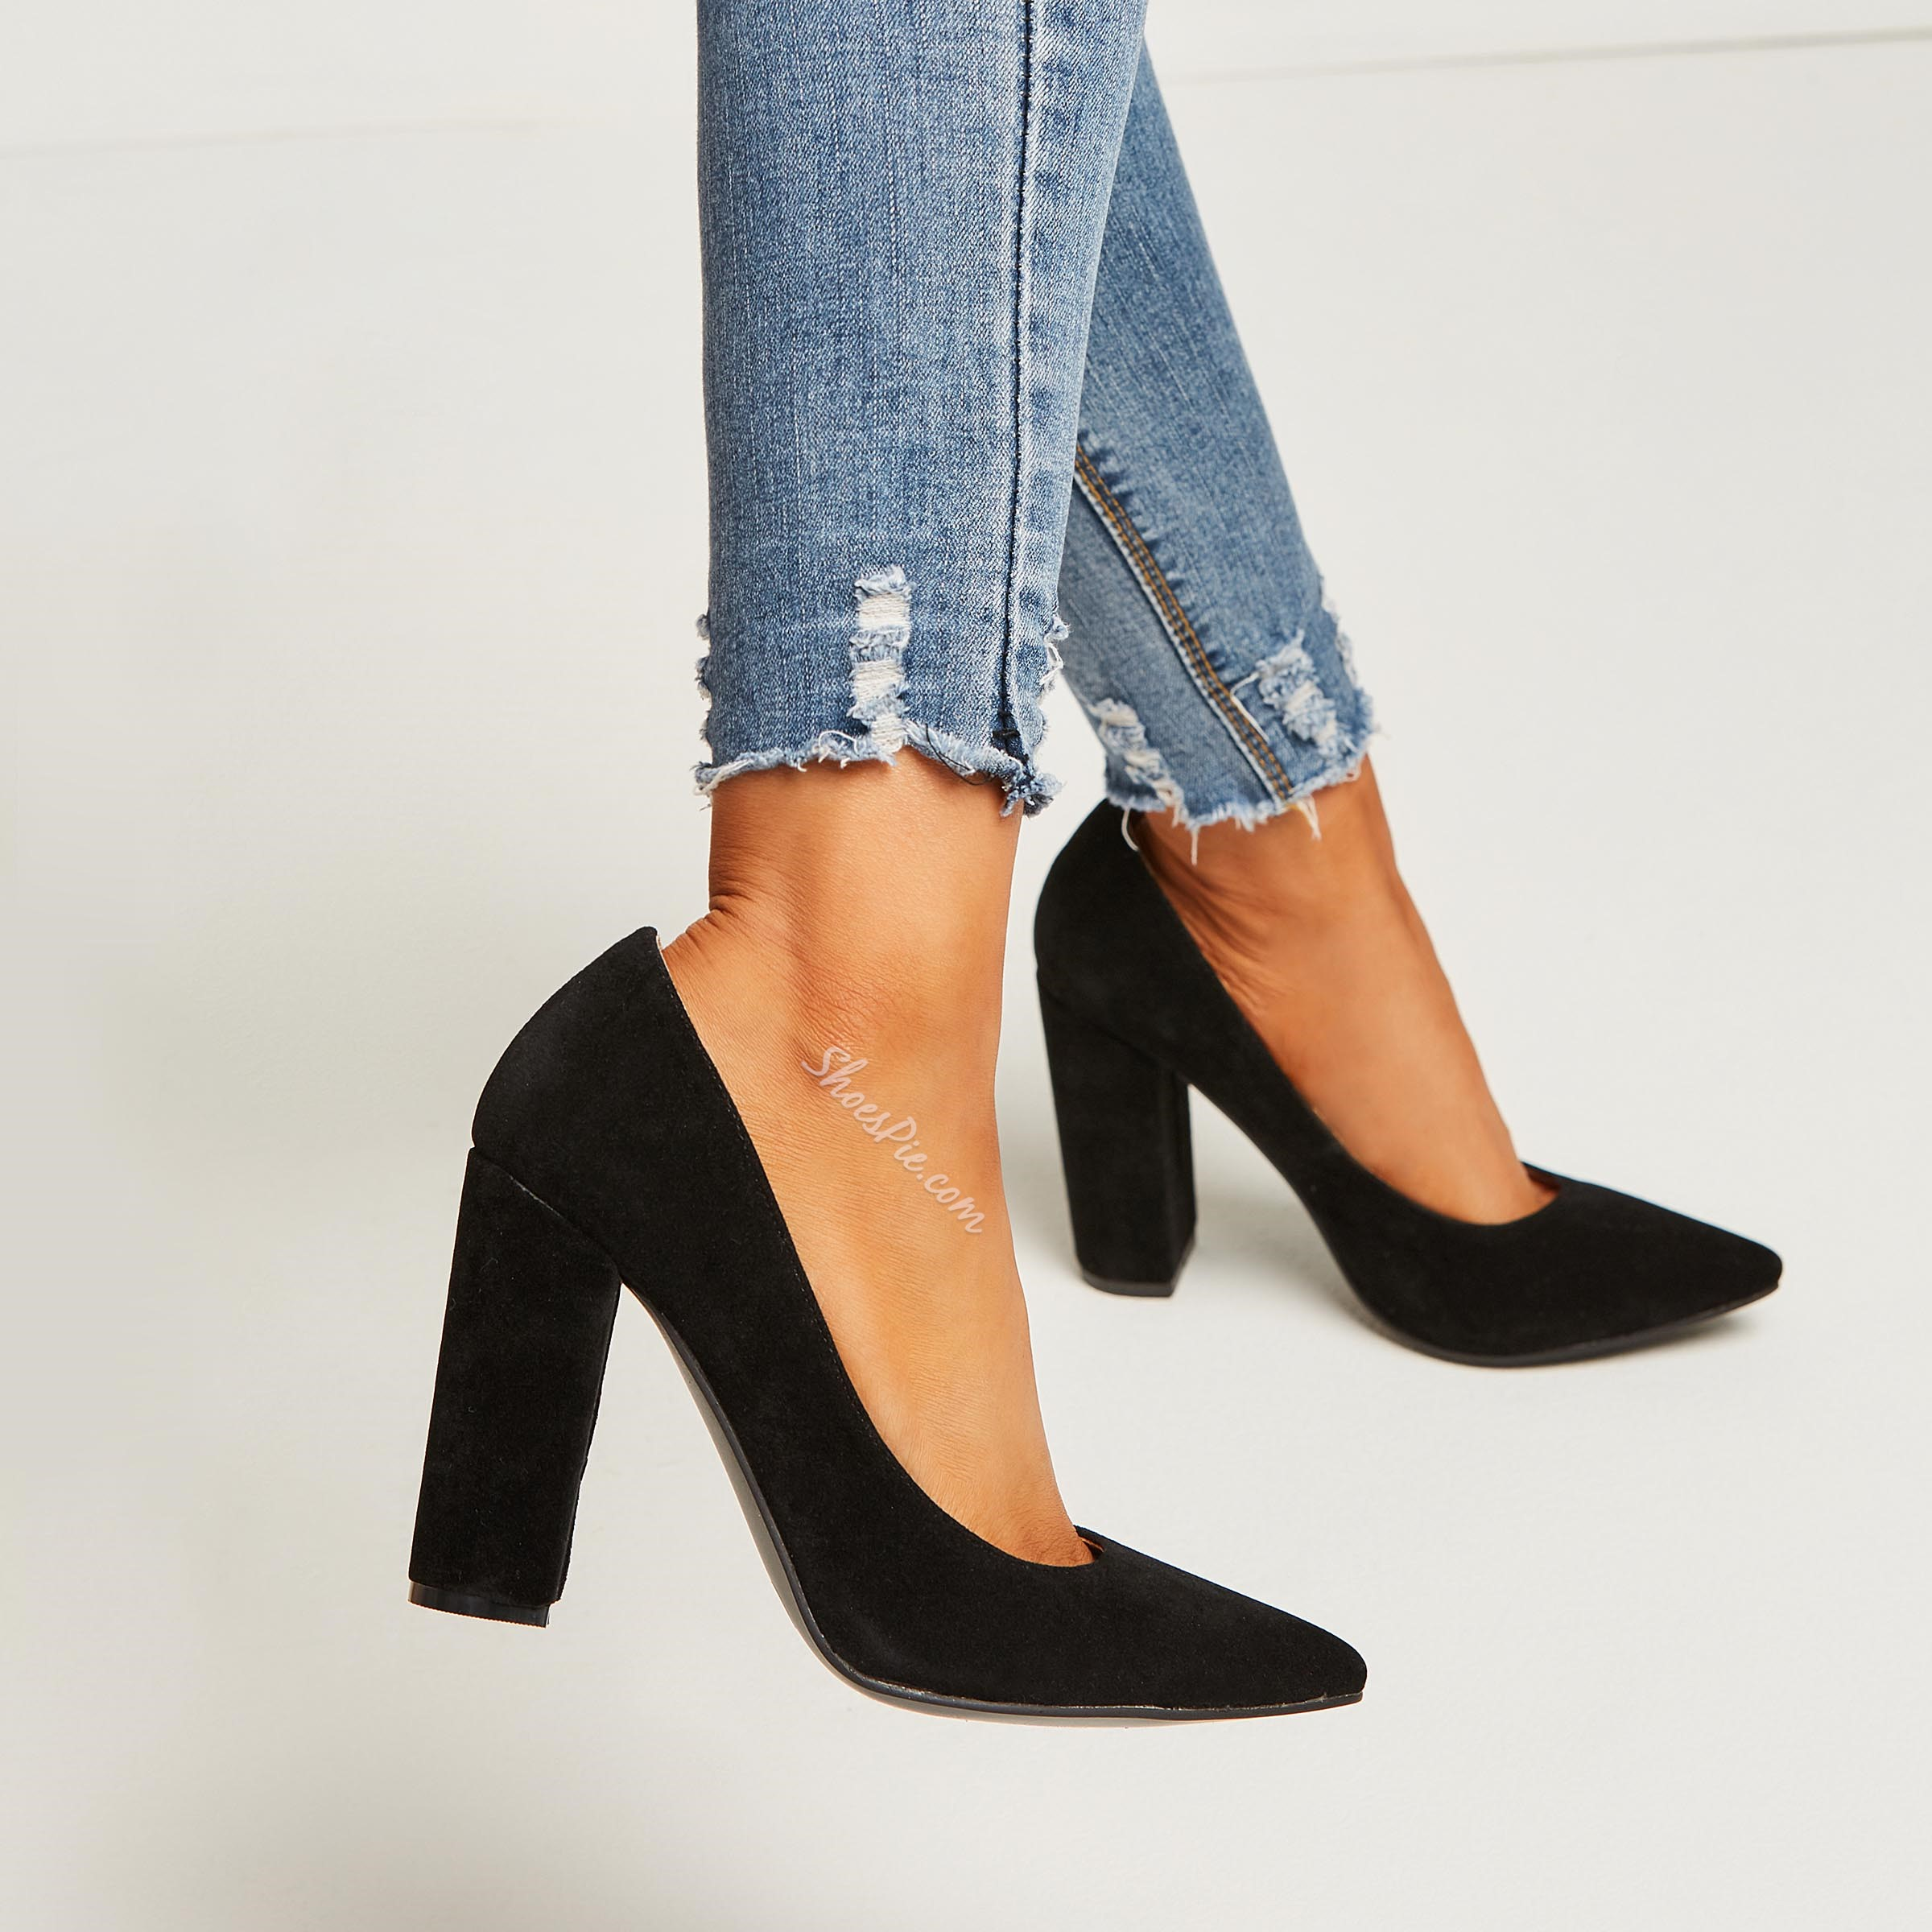 Shoespie Suede Solid Black Slip On Chunky Heel Pumps